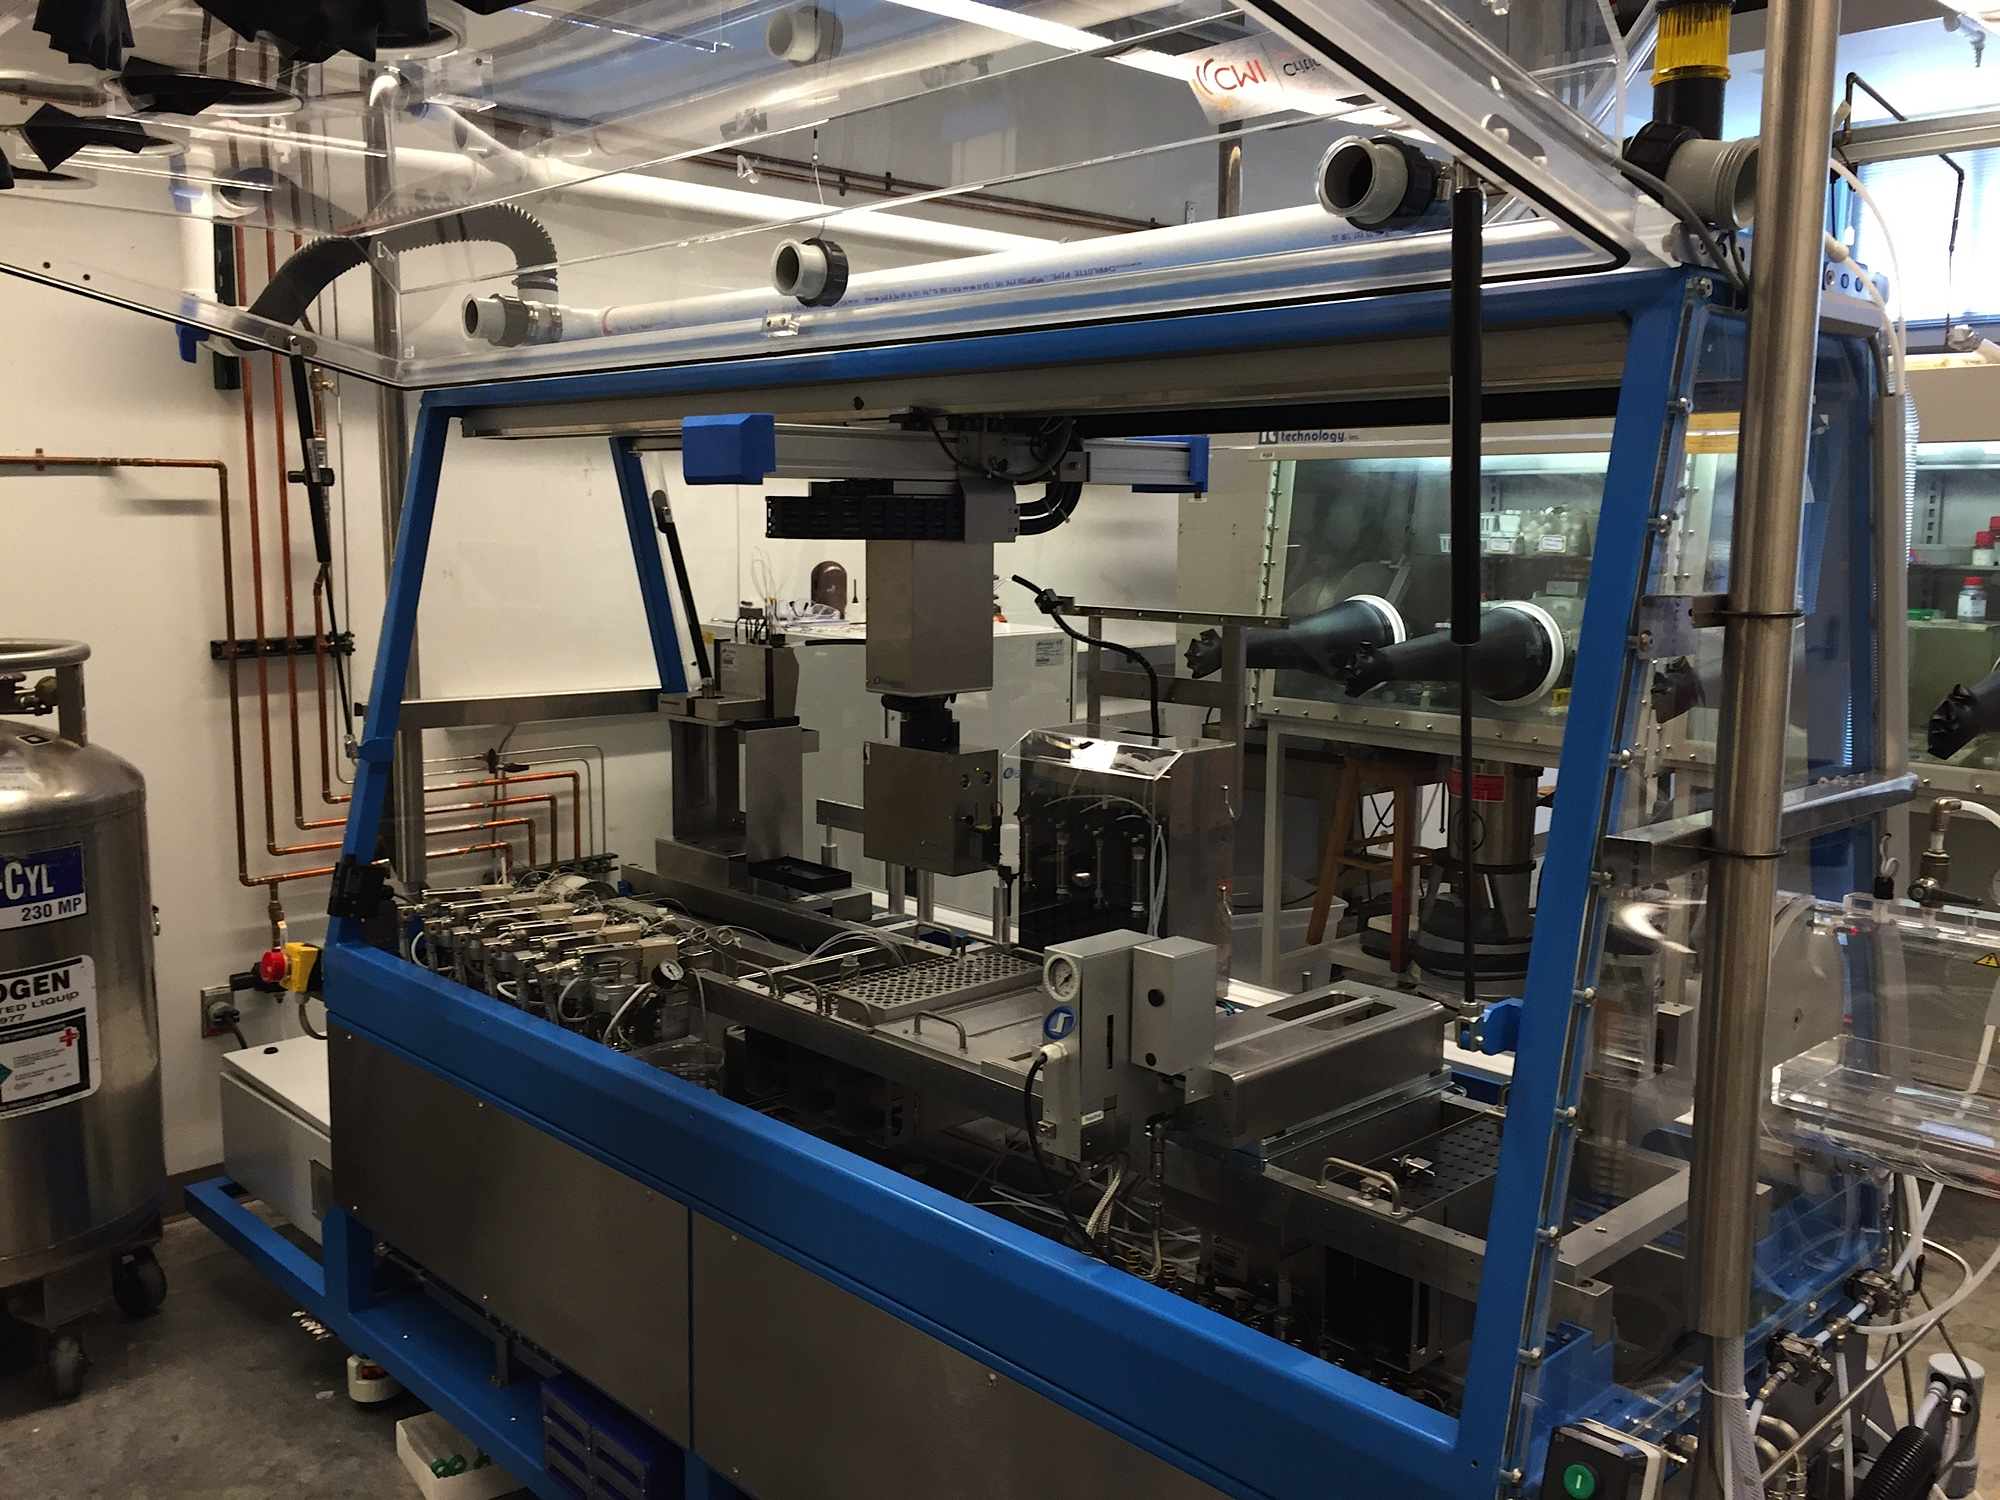 Robotic platform for automated catalysis studies.